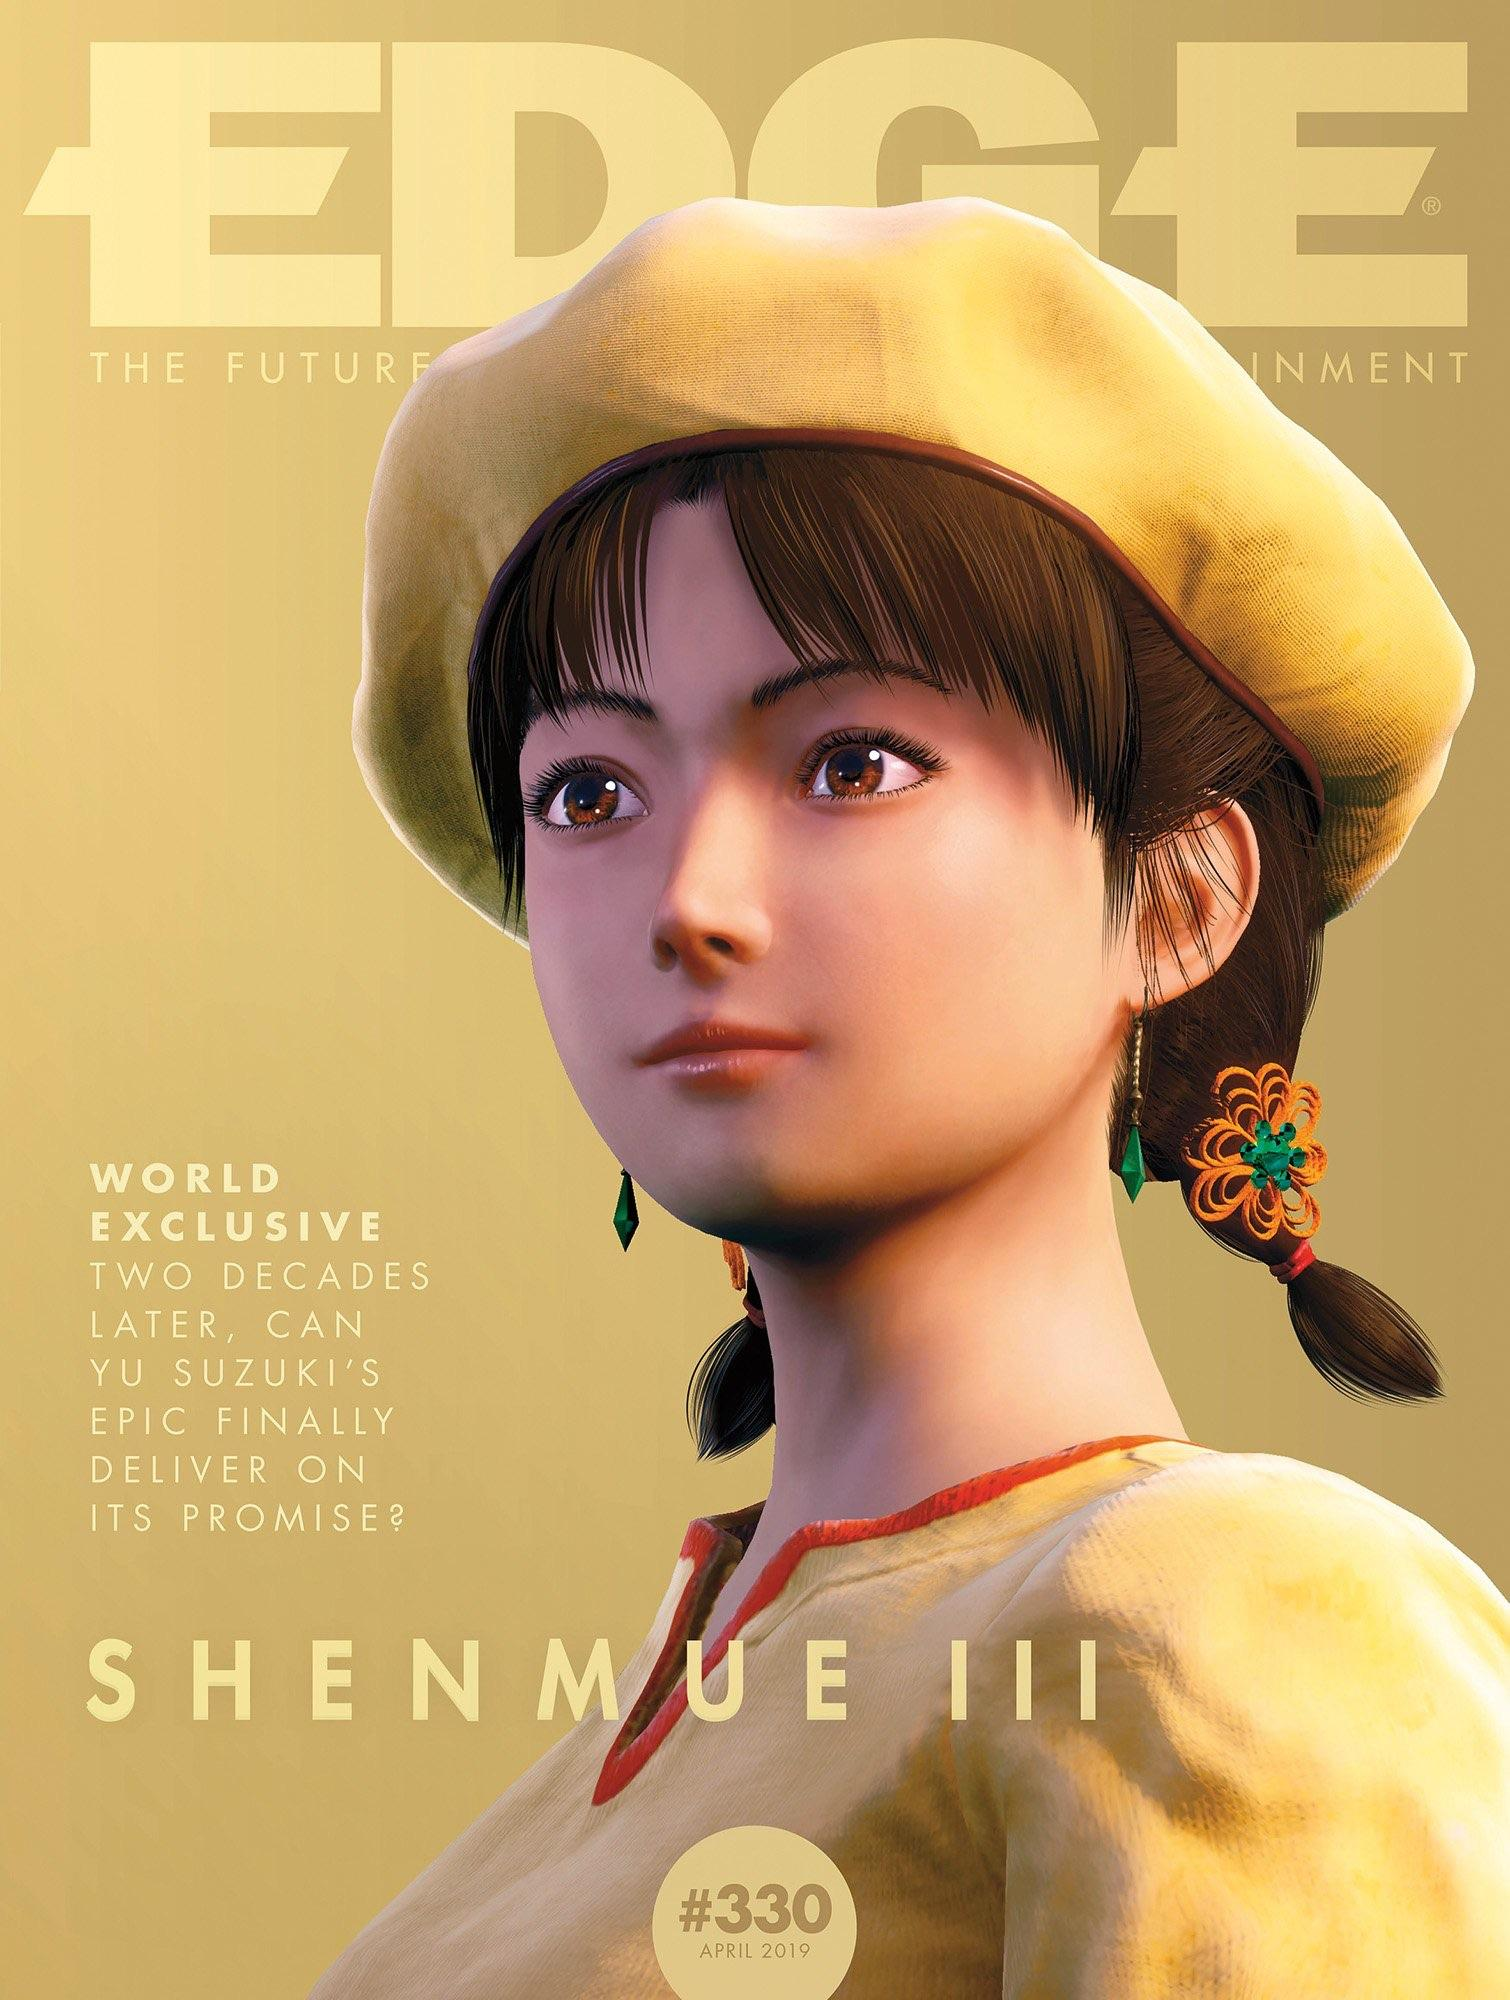 edge 330 shenmue 3 yu suzuki andy kelly april 2019 abril